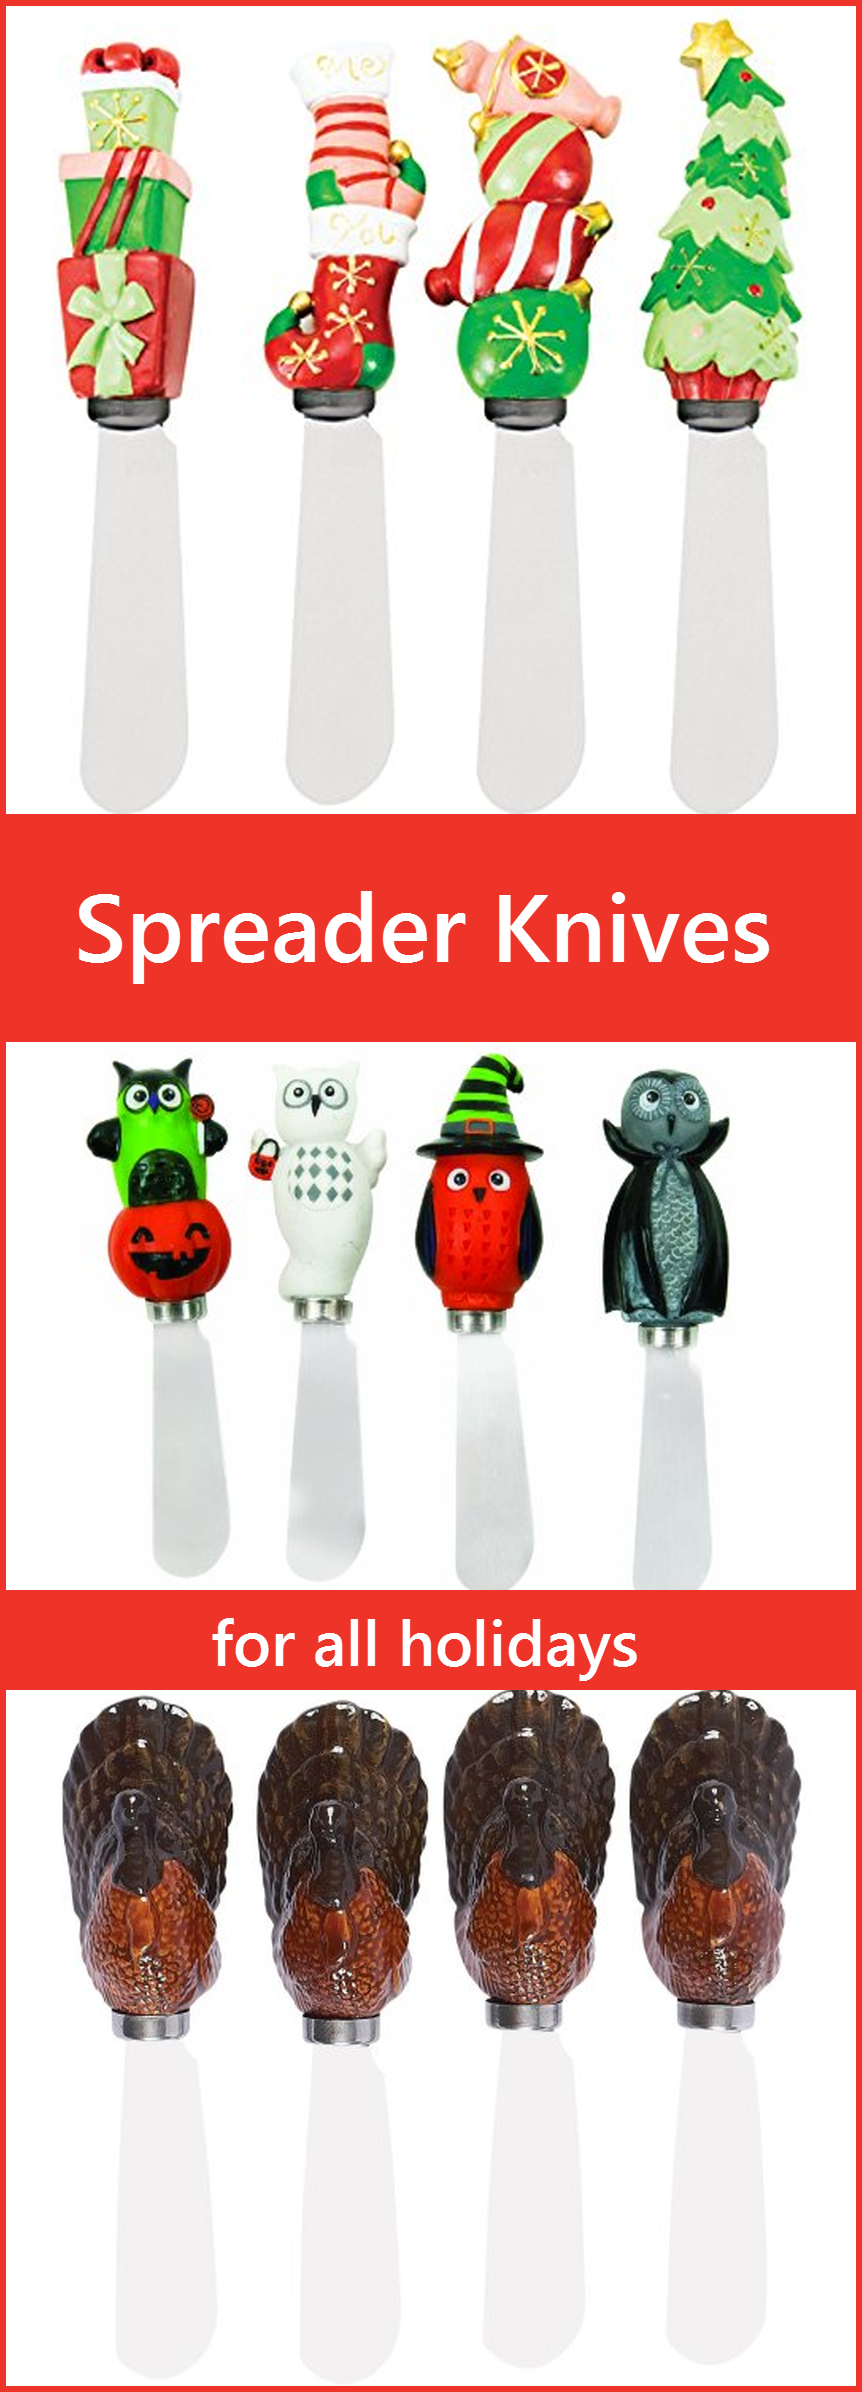 Unique Butter Spreaders & Cheese Knives For All Occasions